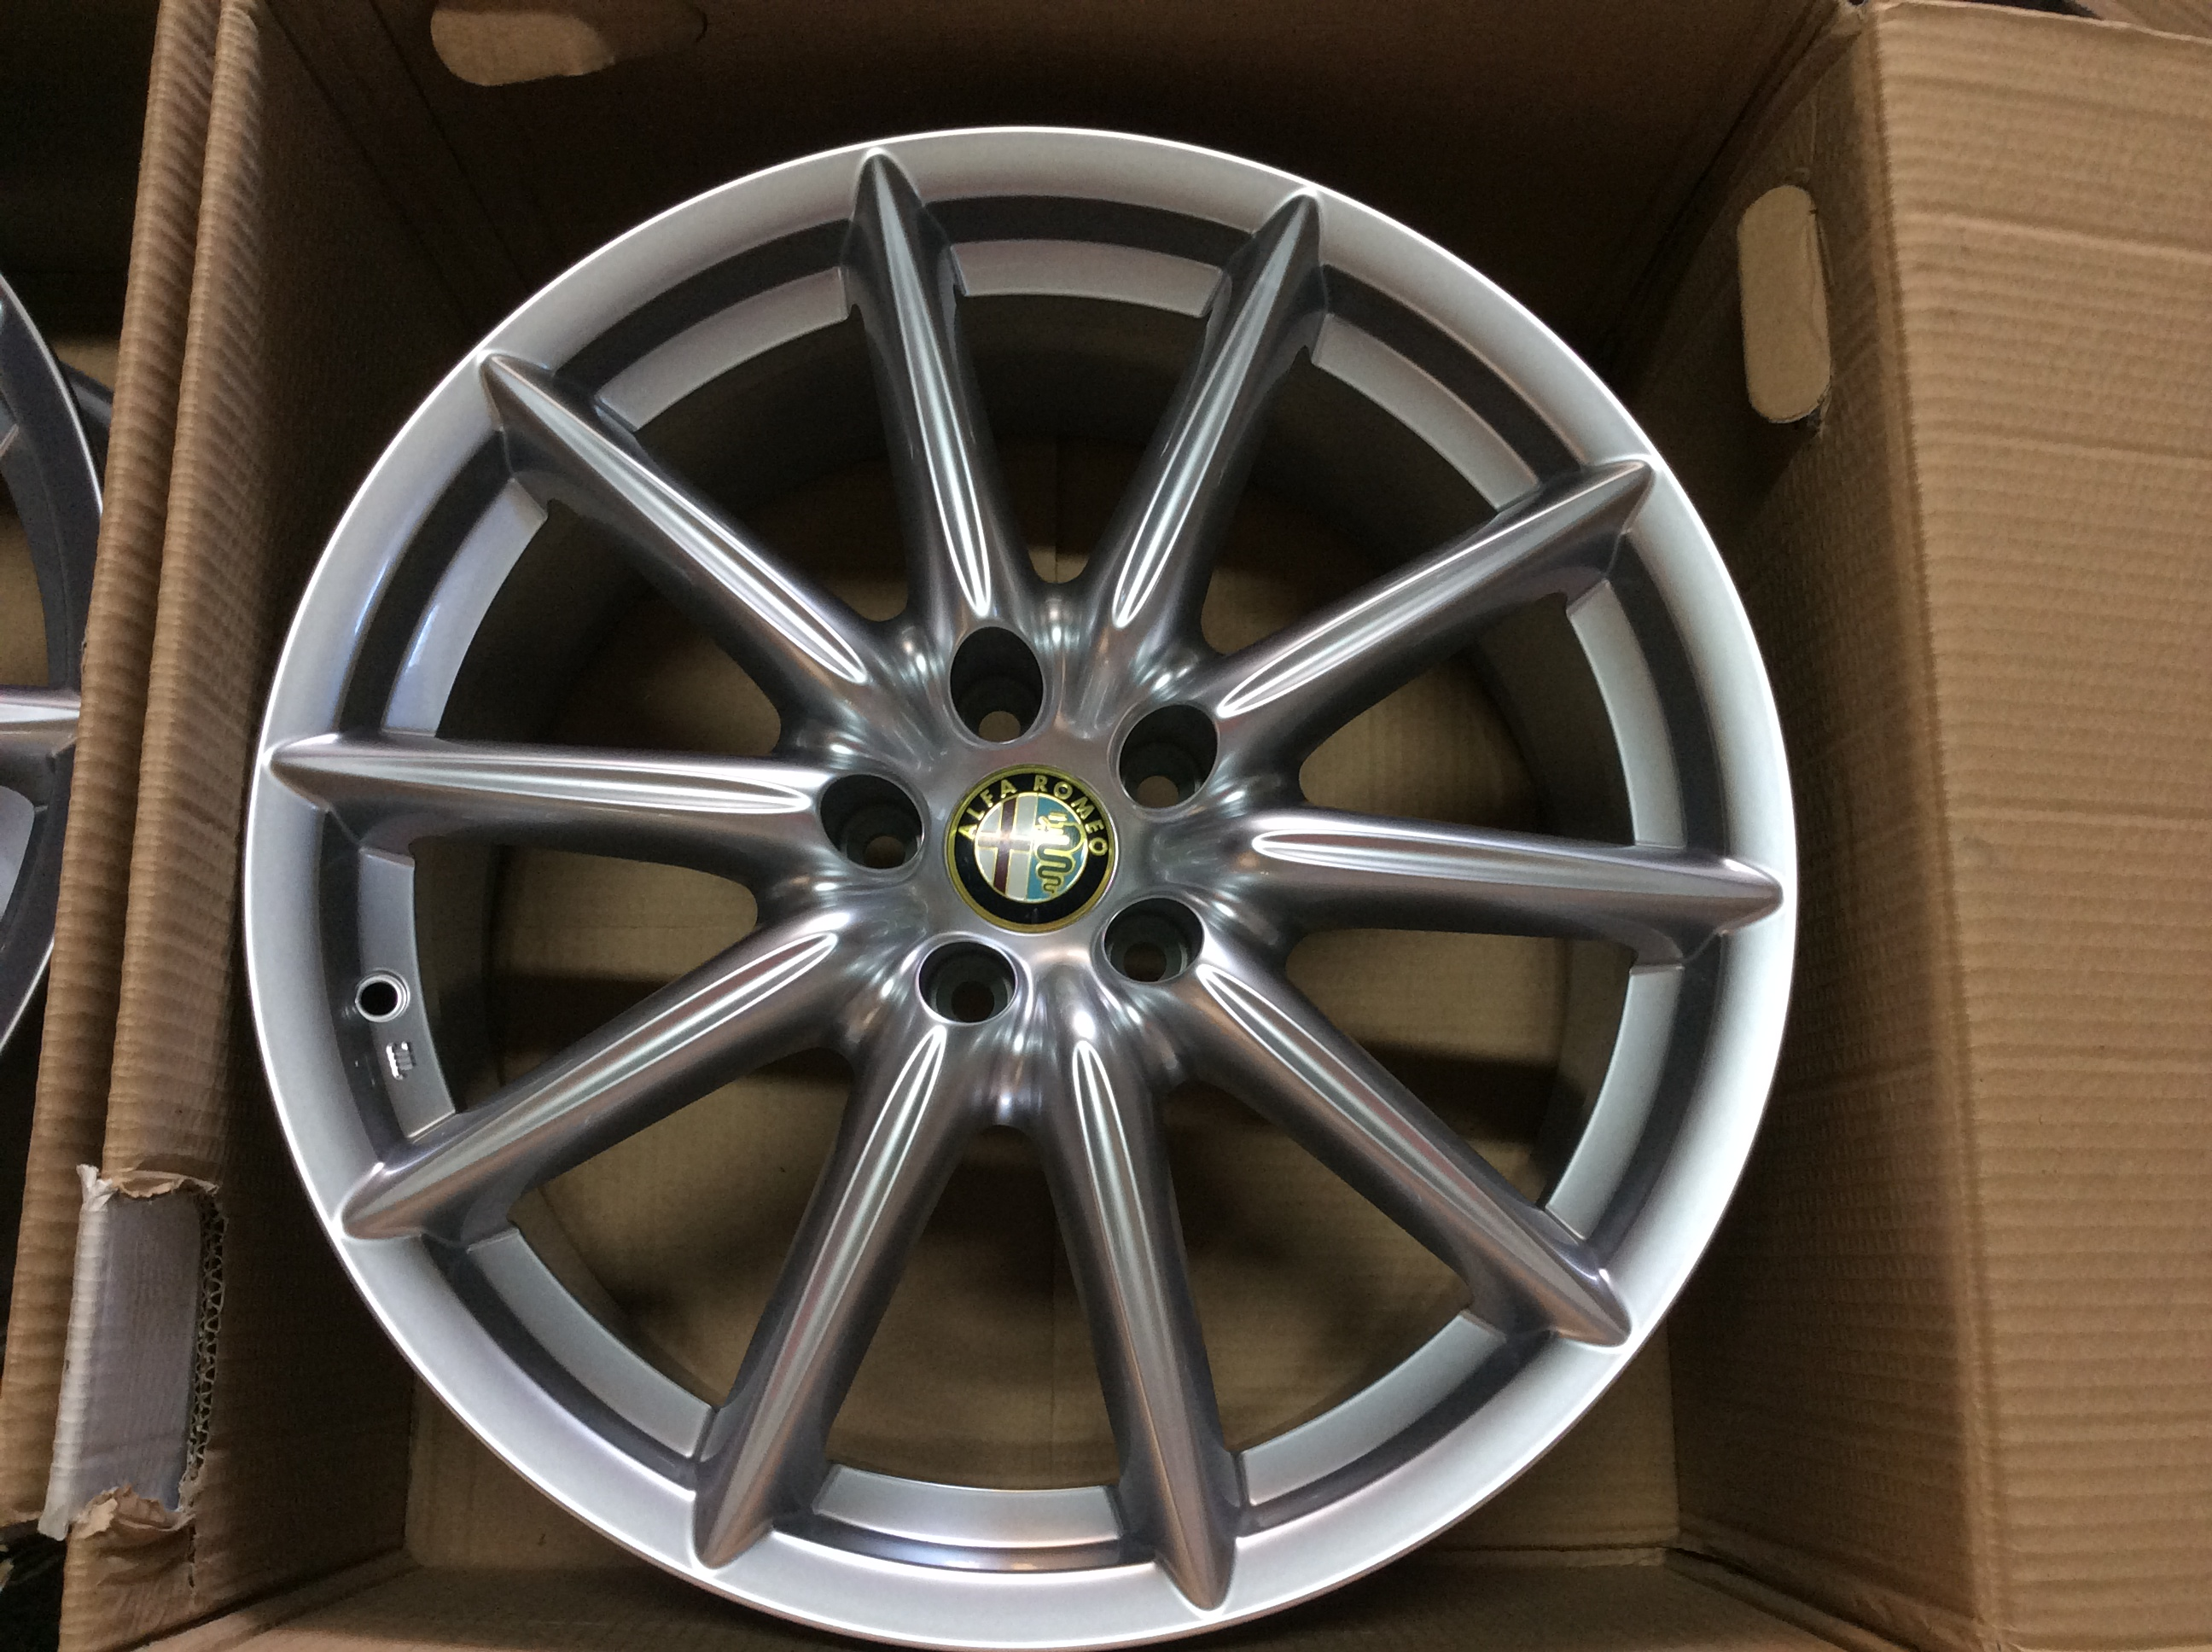 Alfa romeo 156 gta replica wheels 13